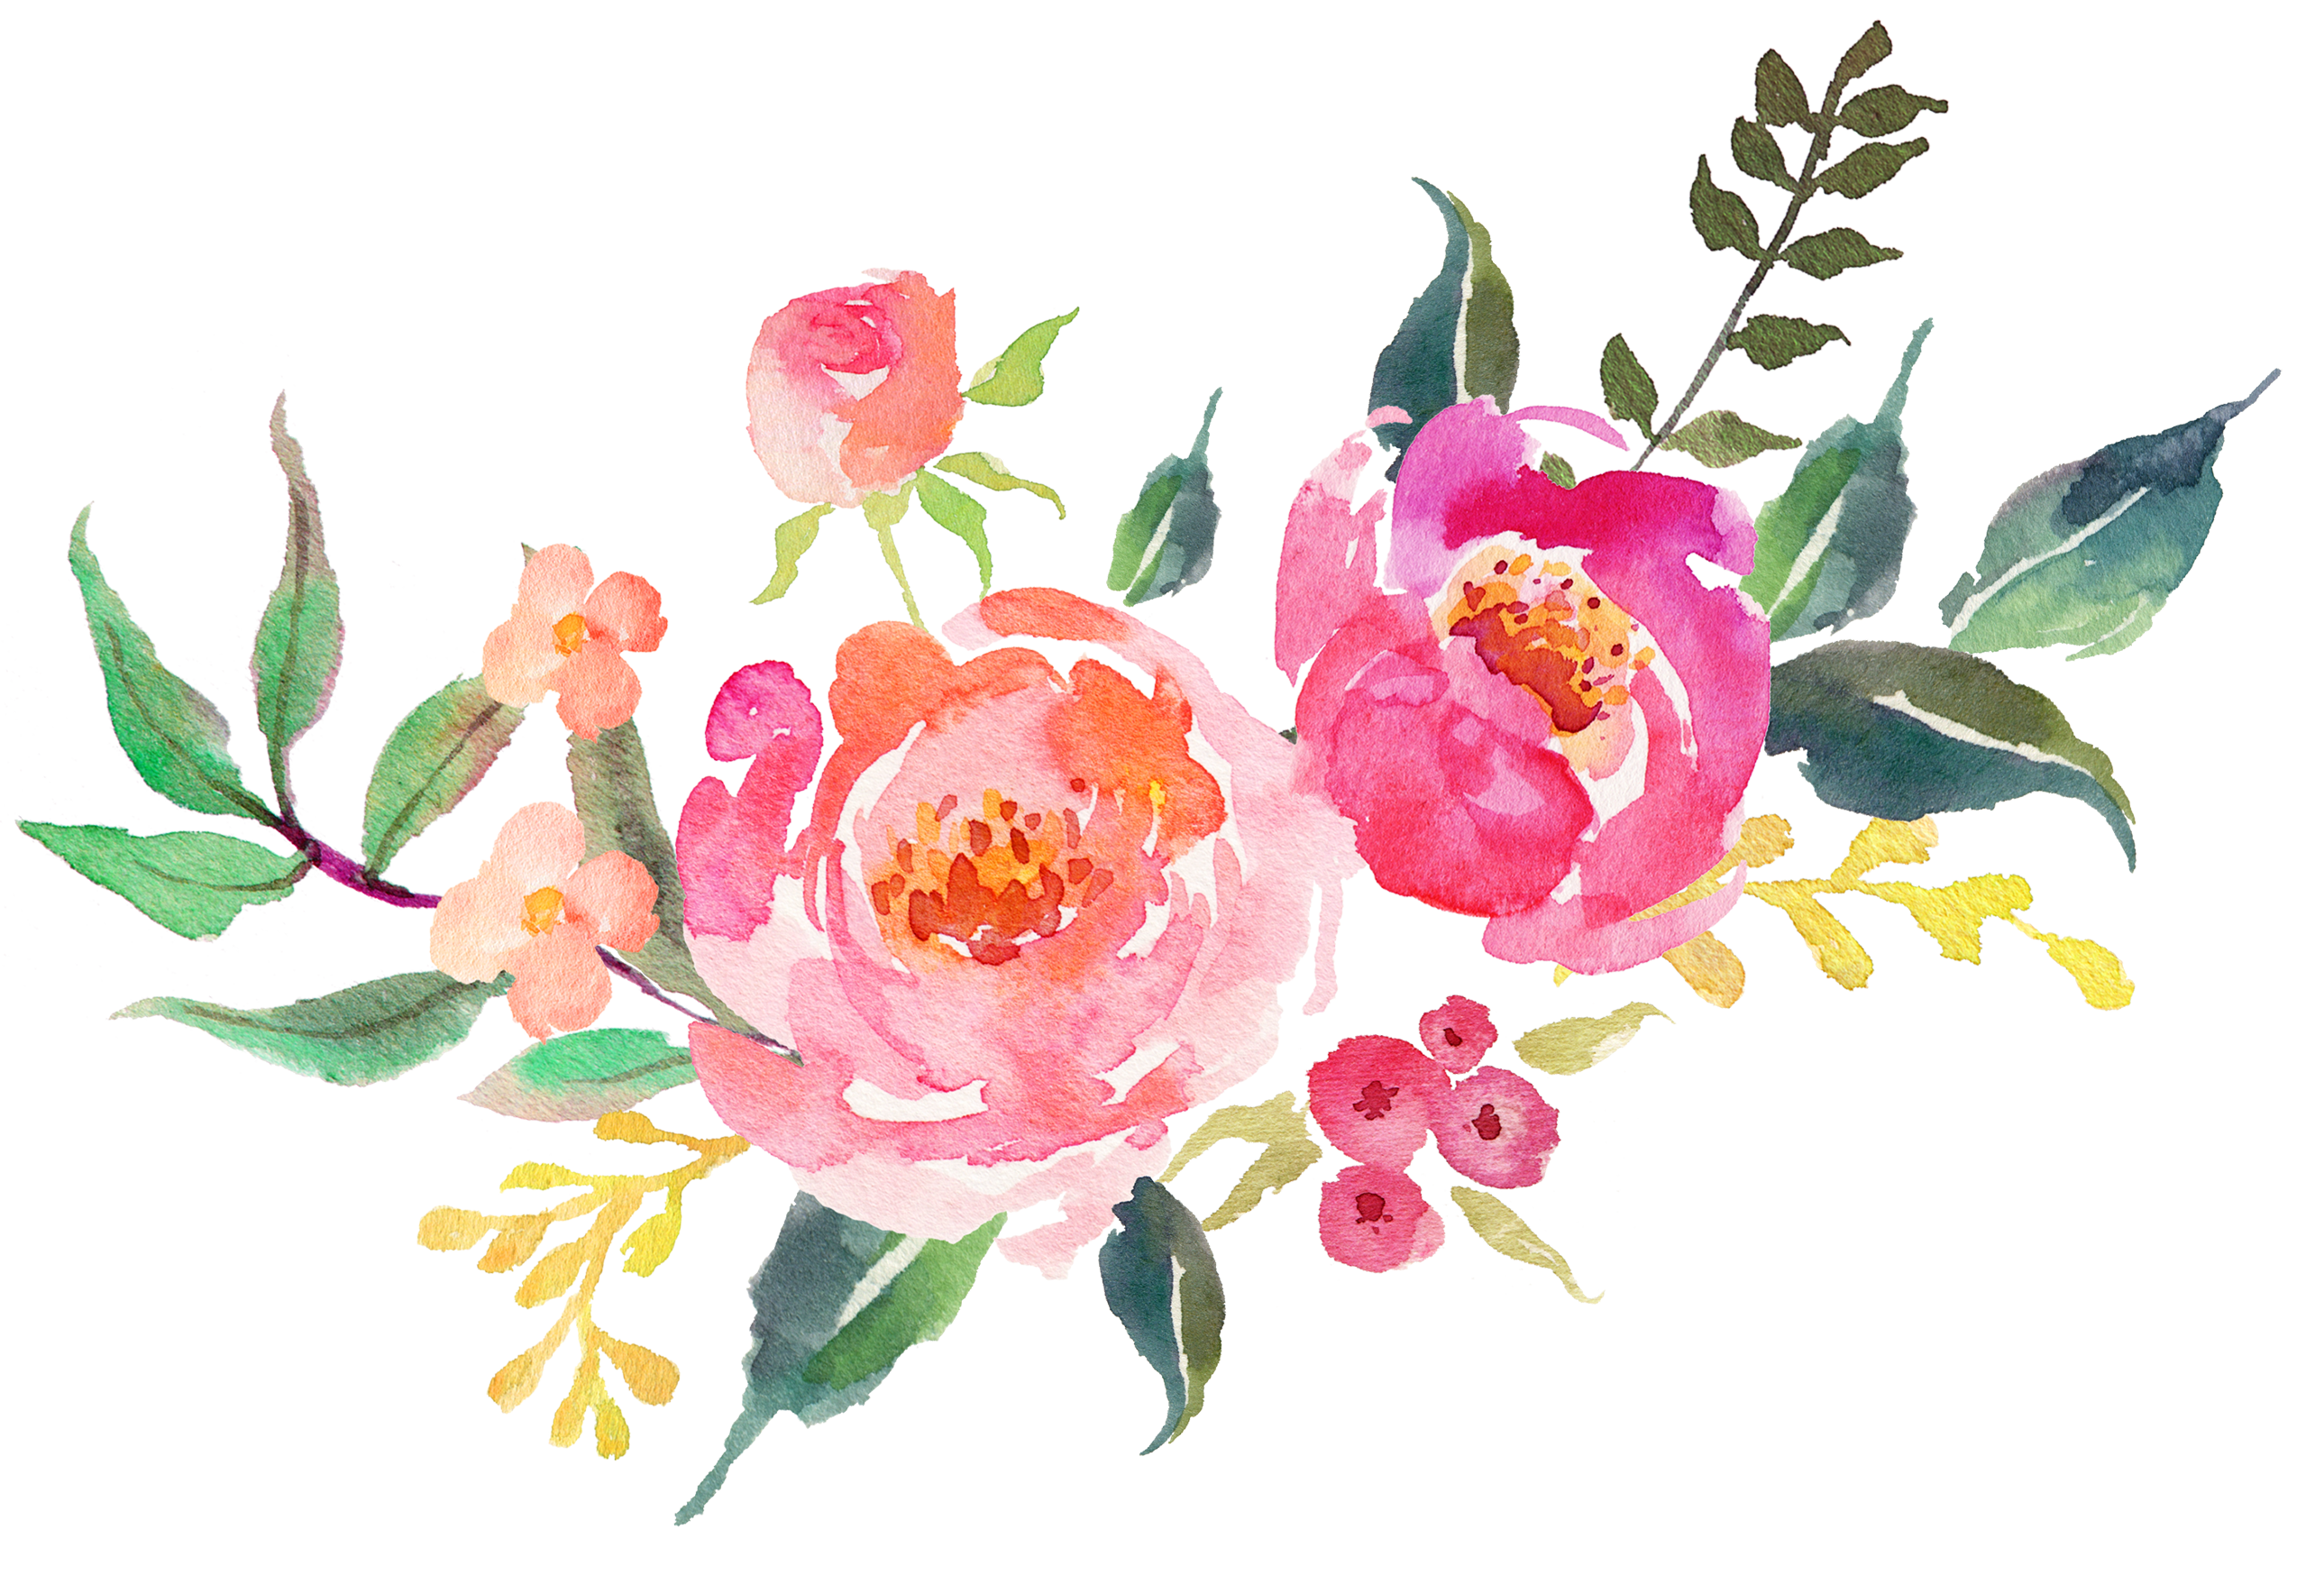 Rosas vector. Watercolour almohadones para sublimar